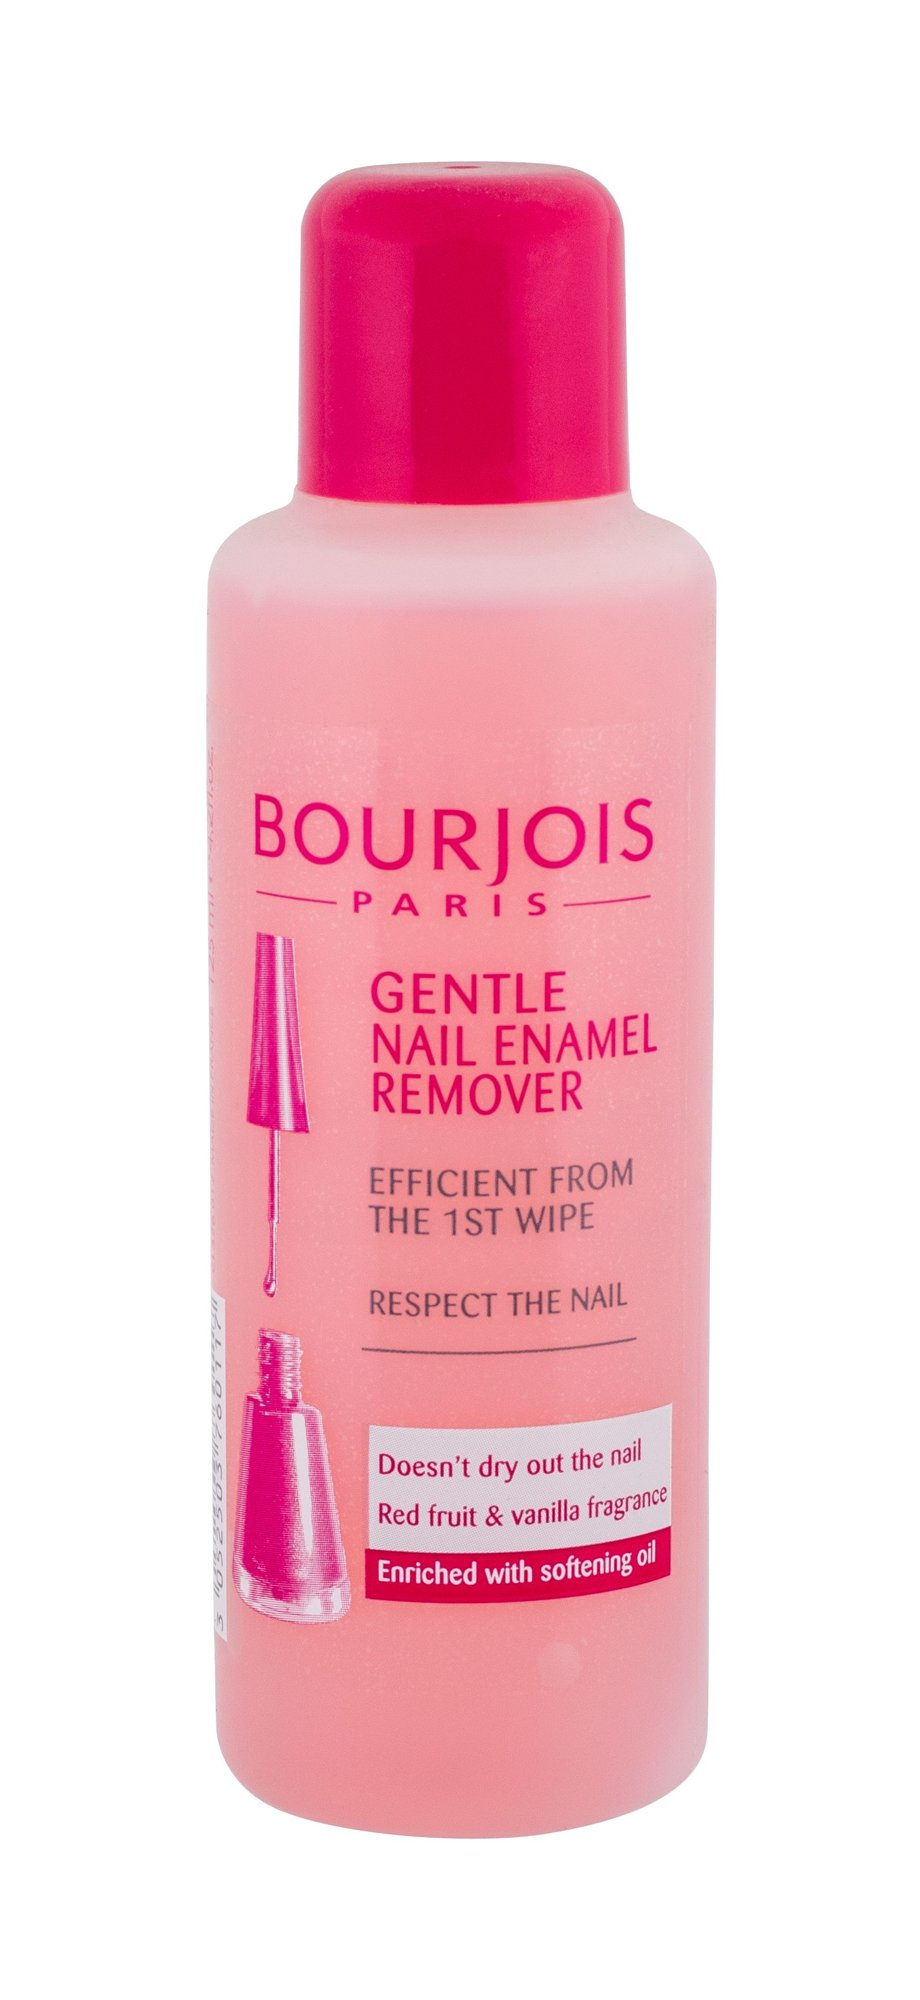 BOURJOIS Paris Gentle Nail Enamel Remover Cosmetic 125ml